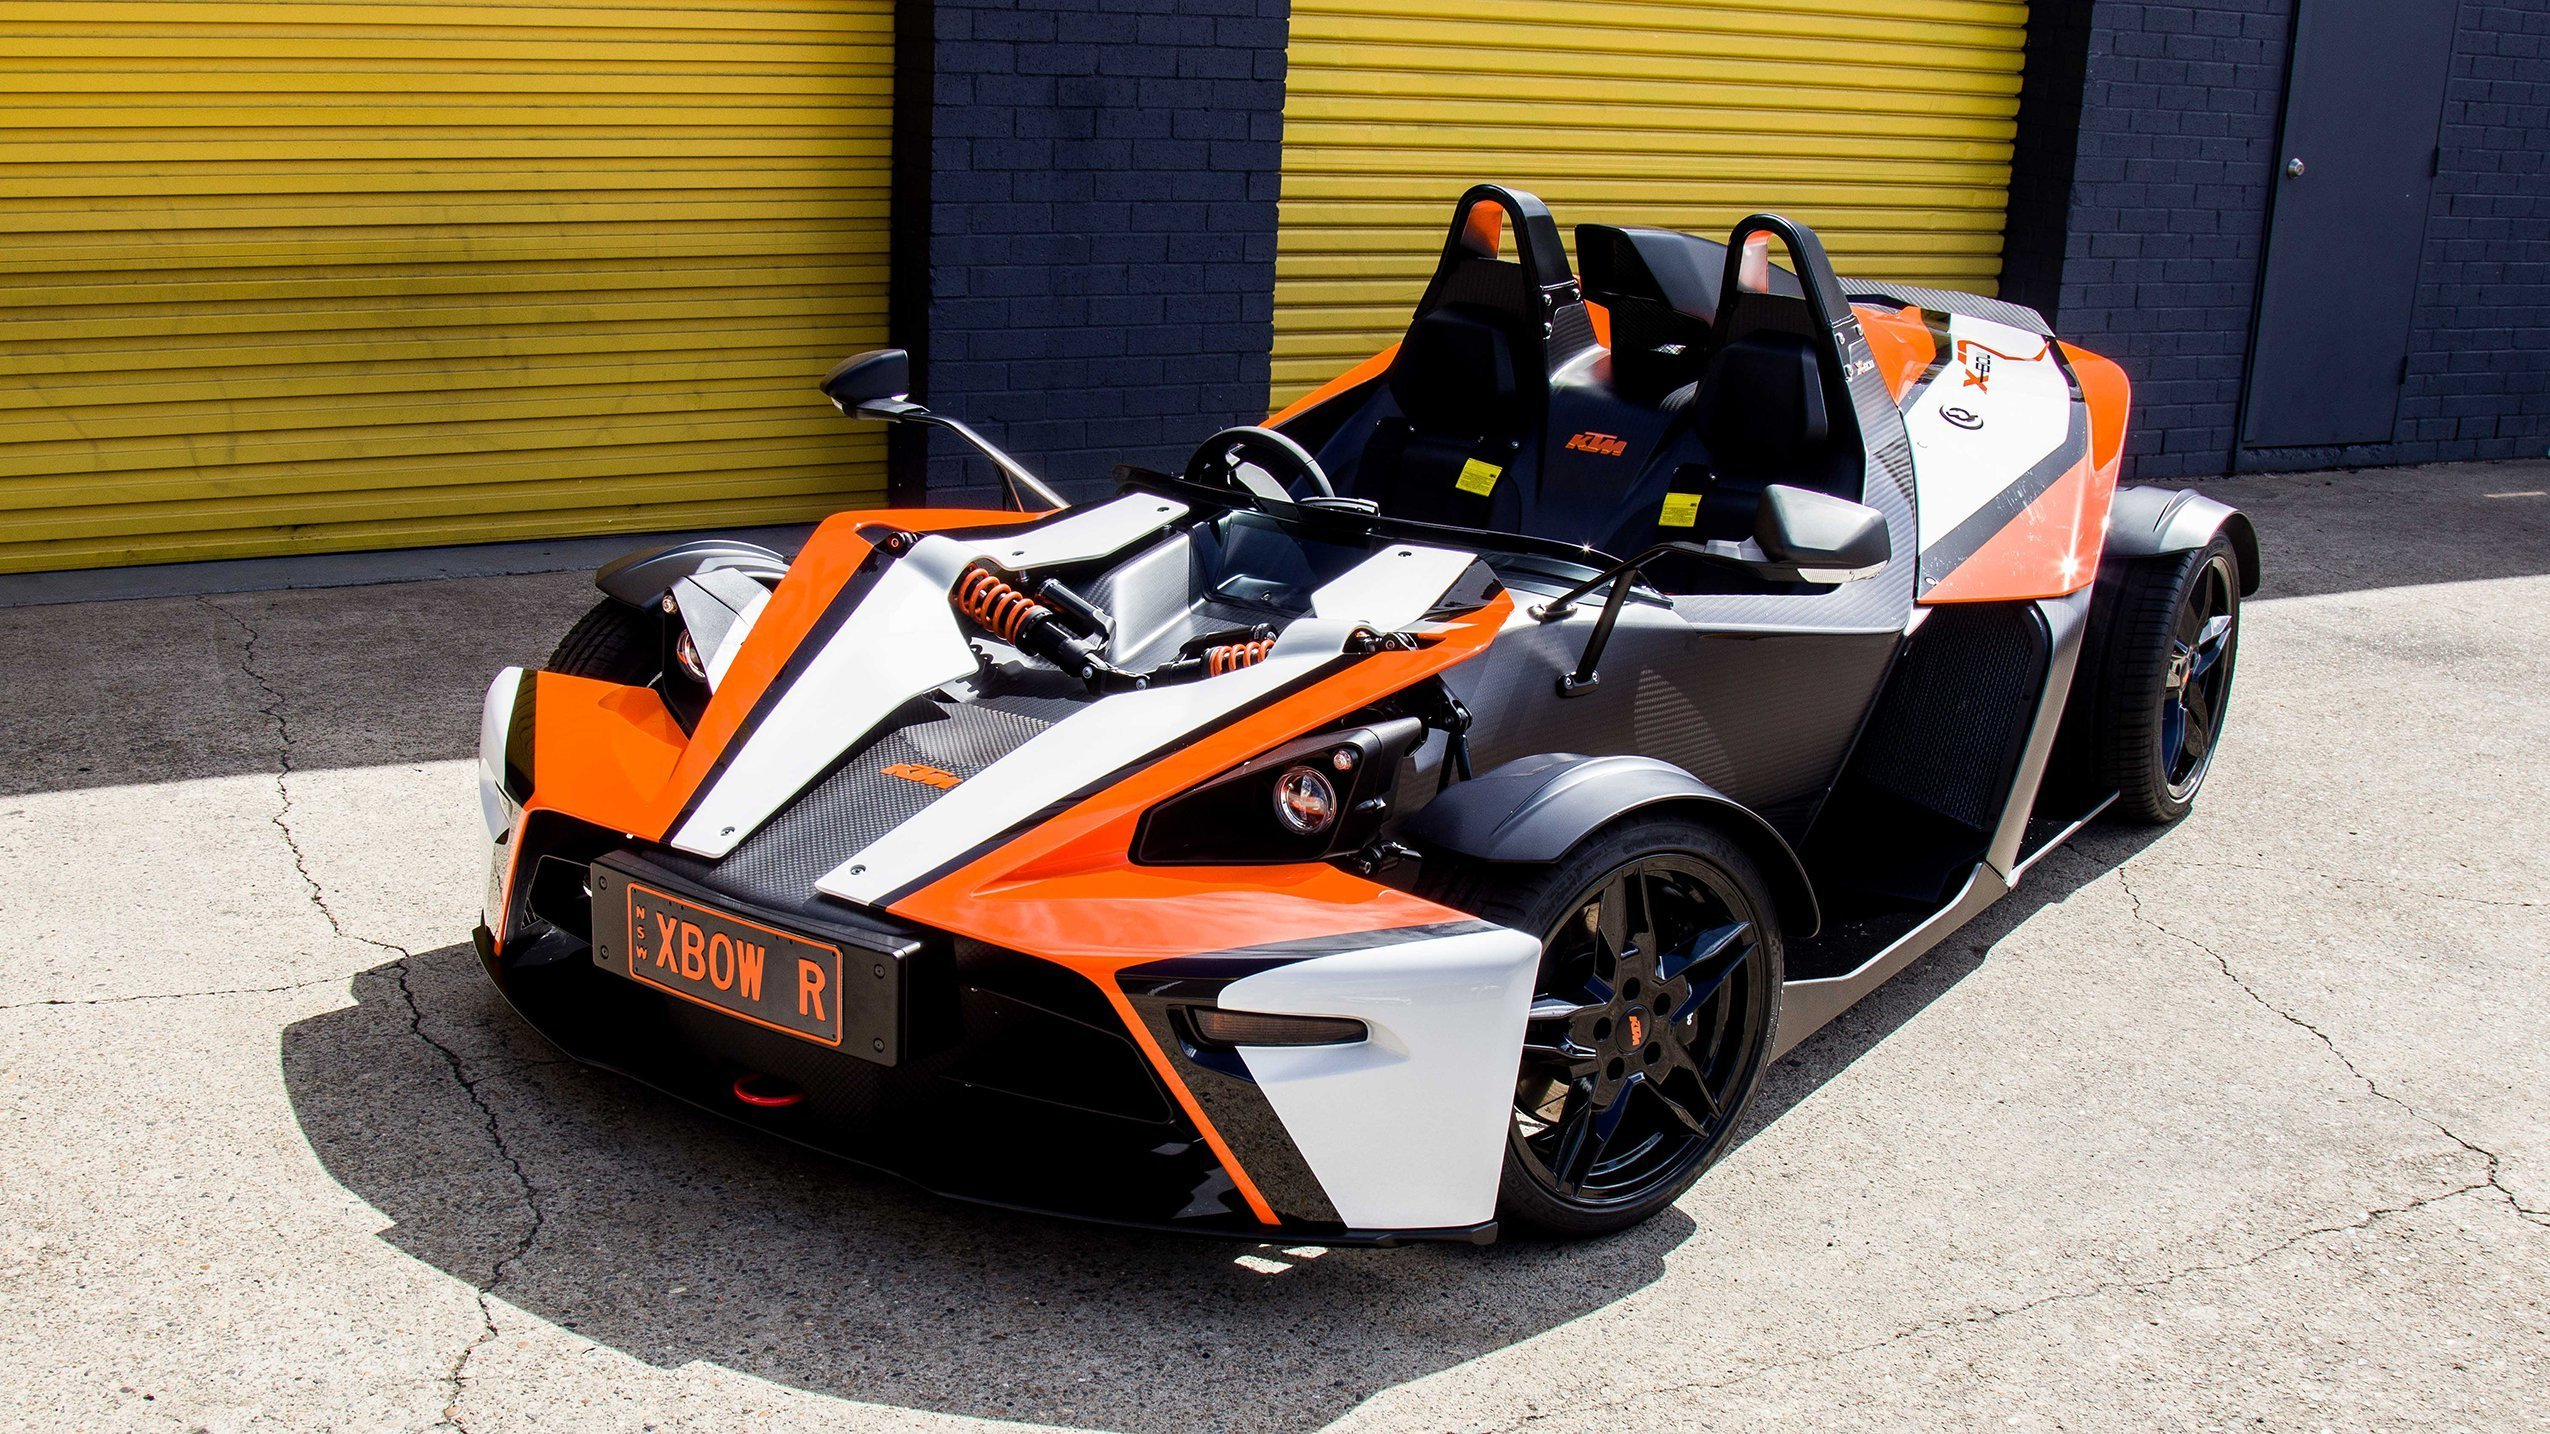 New Ktm X Bow On Sale In Australia And It S Street Legal On This Month